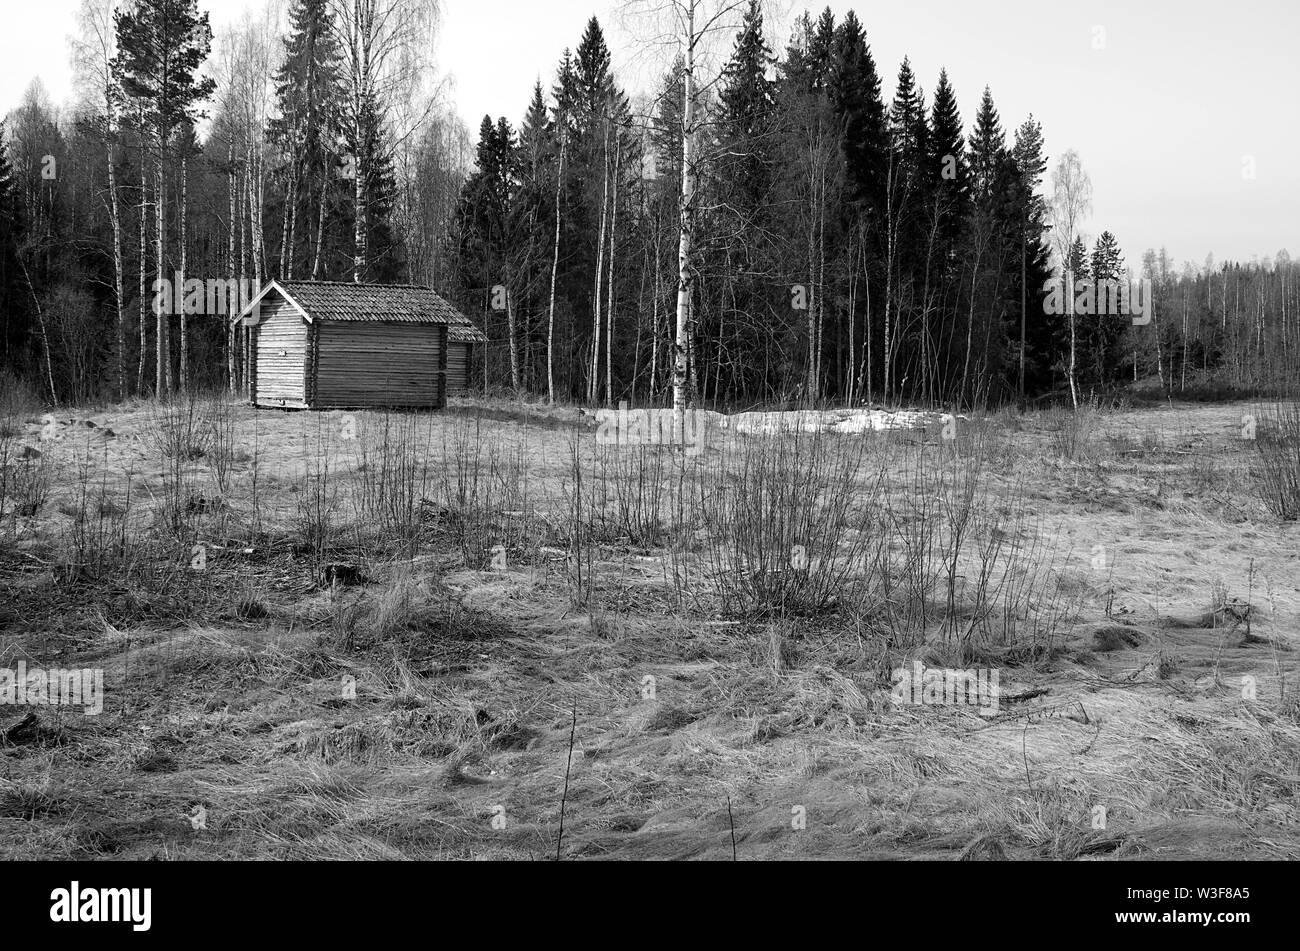 An old small farm house on a field near a forest in black and white. Stock Photo